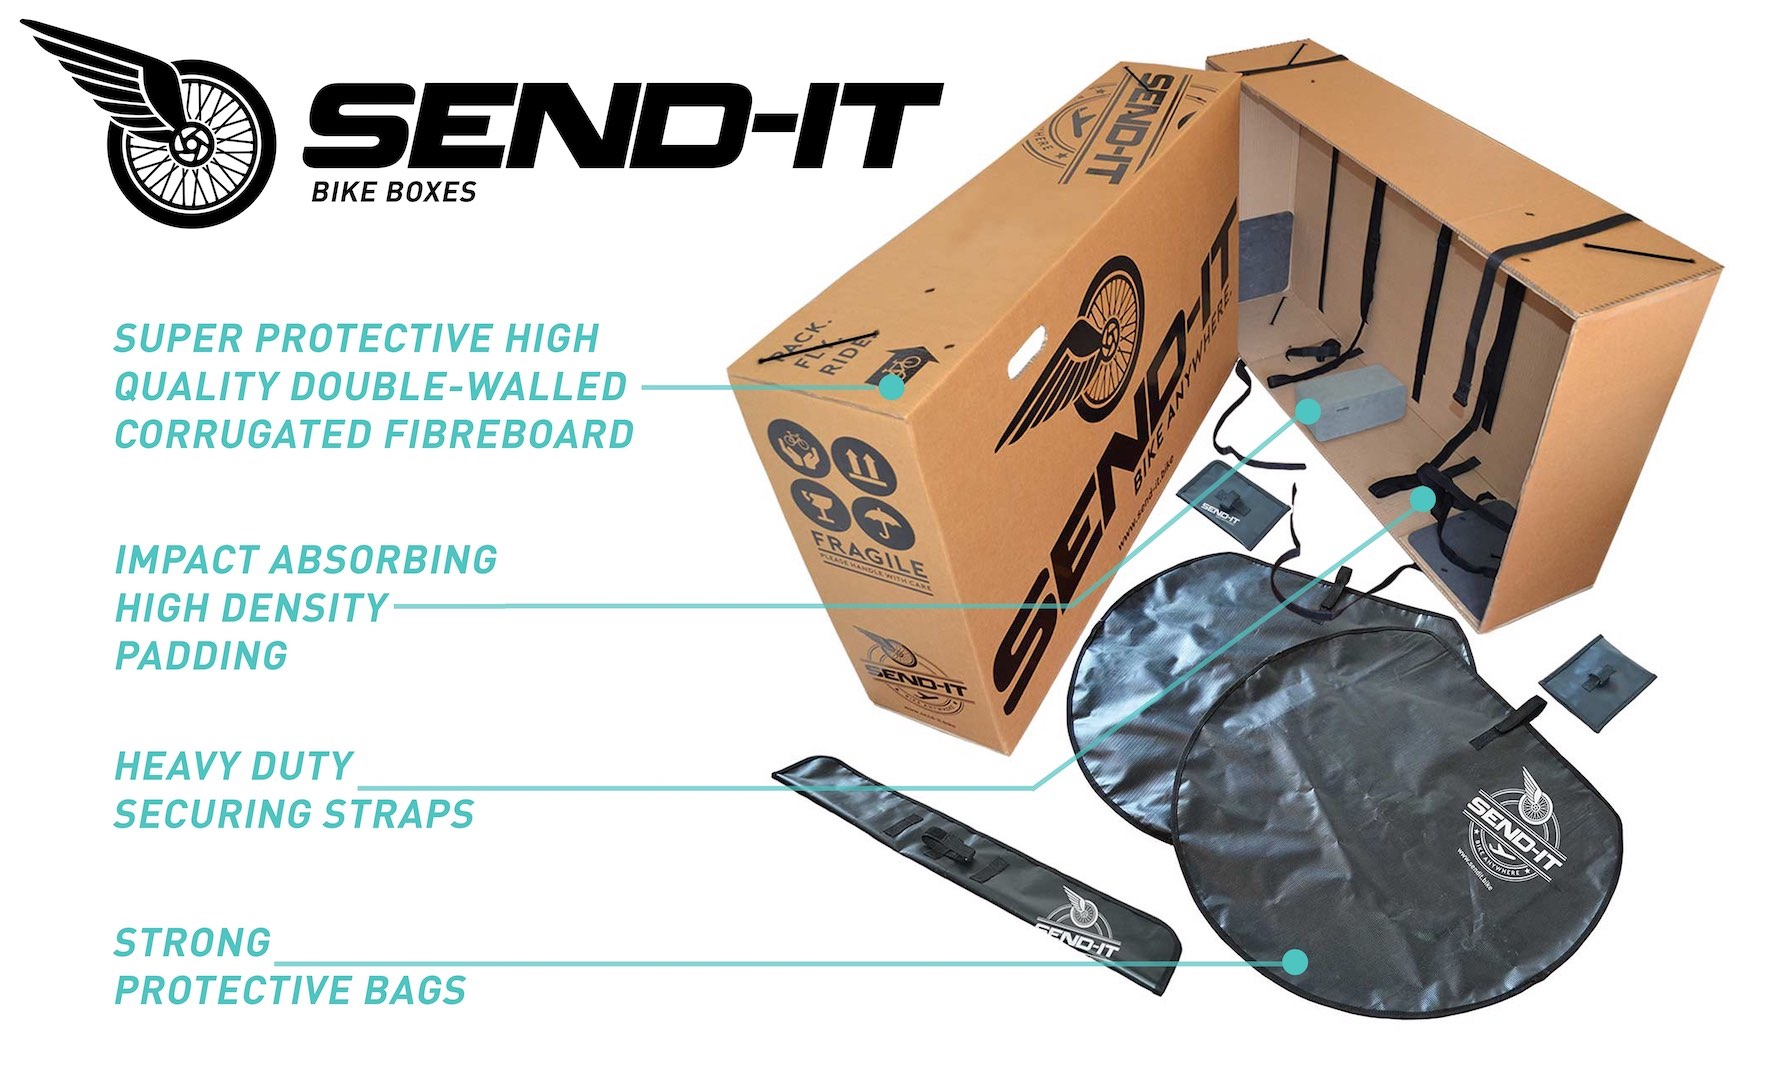 Key features of the SEND-IT Bike Box